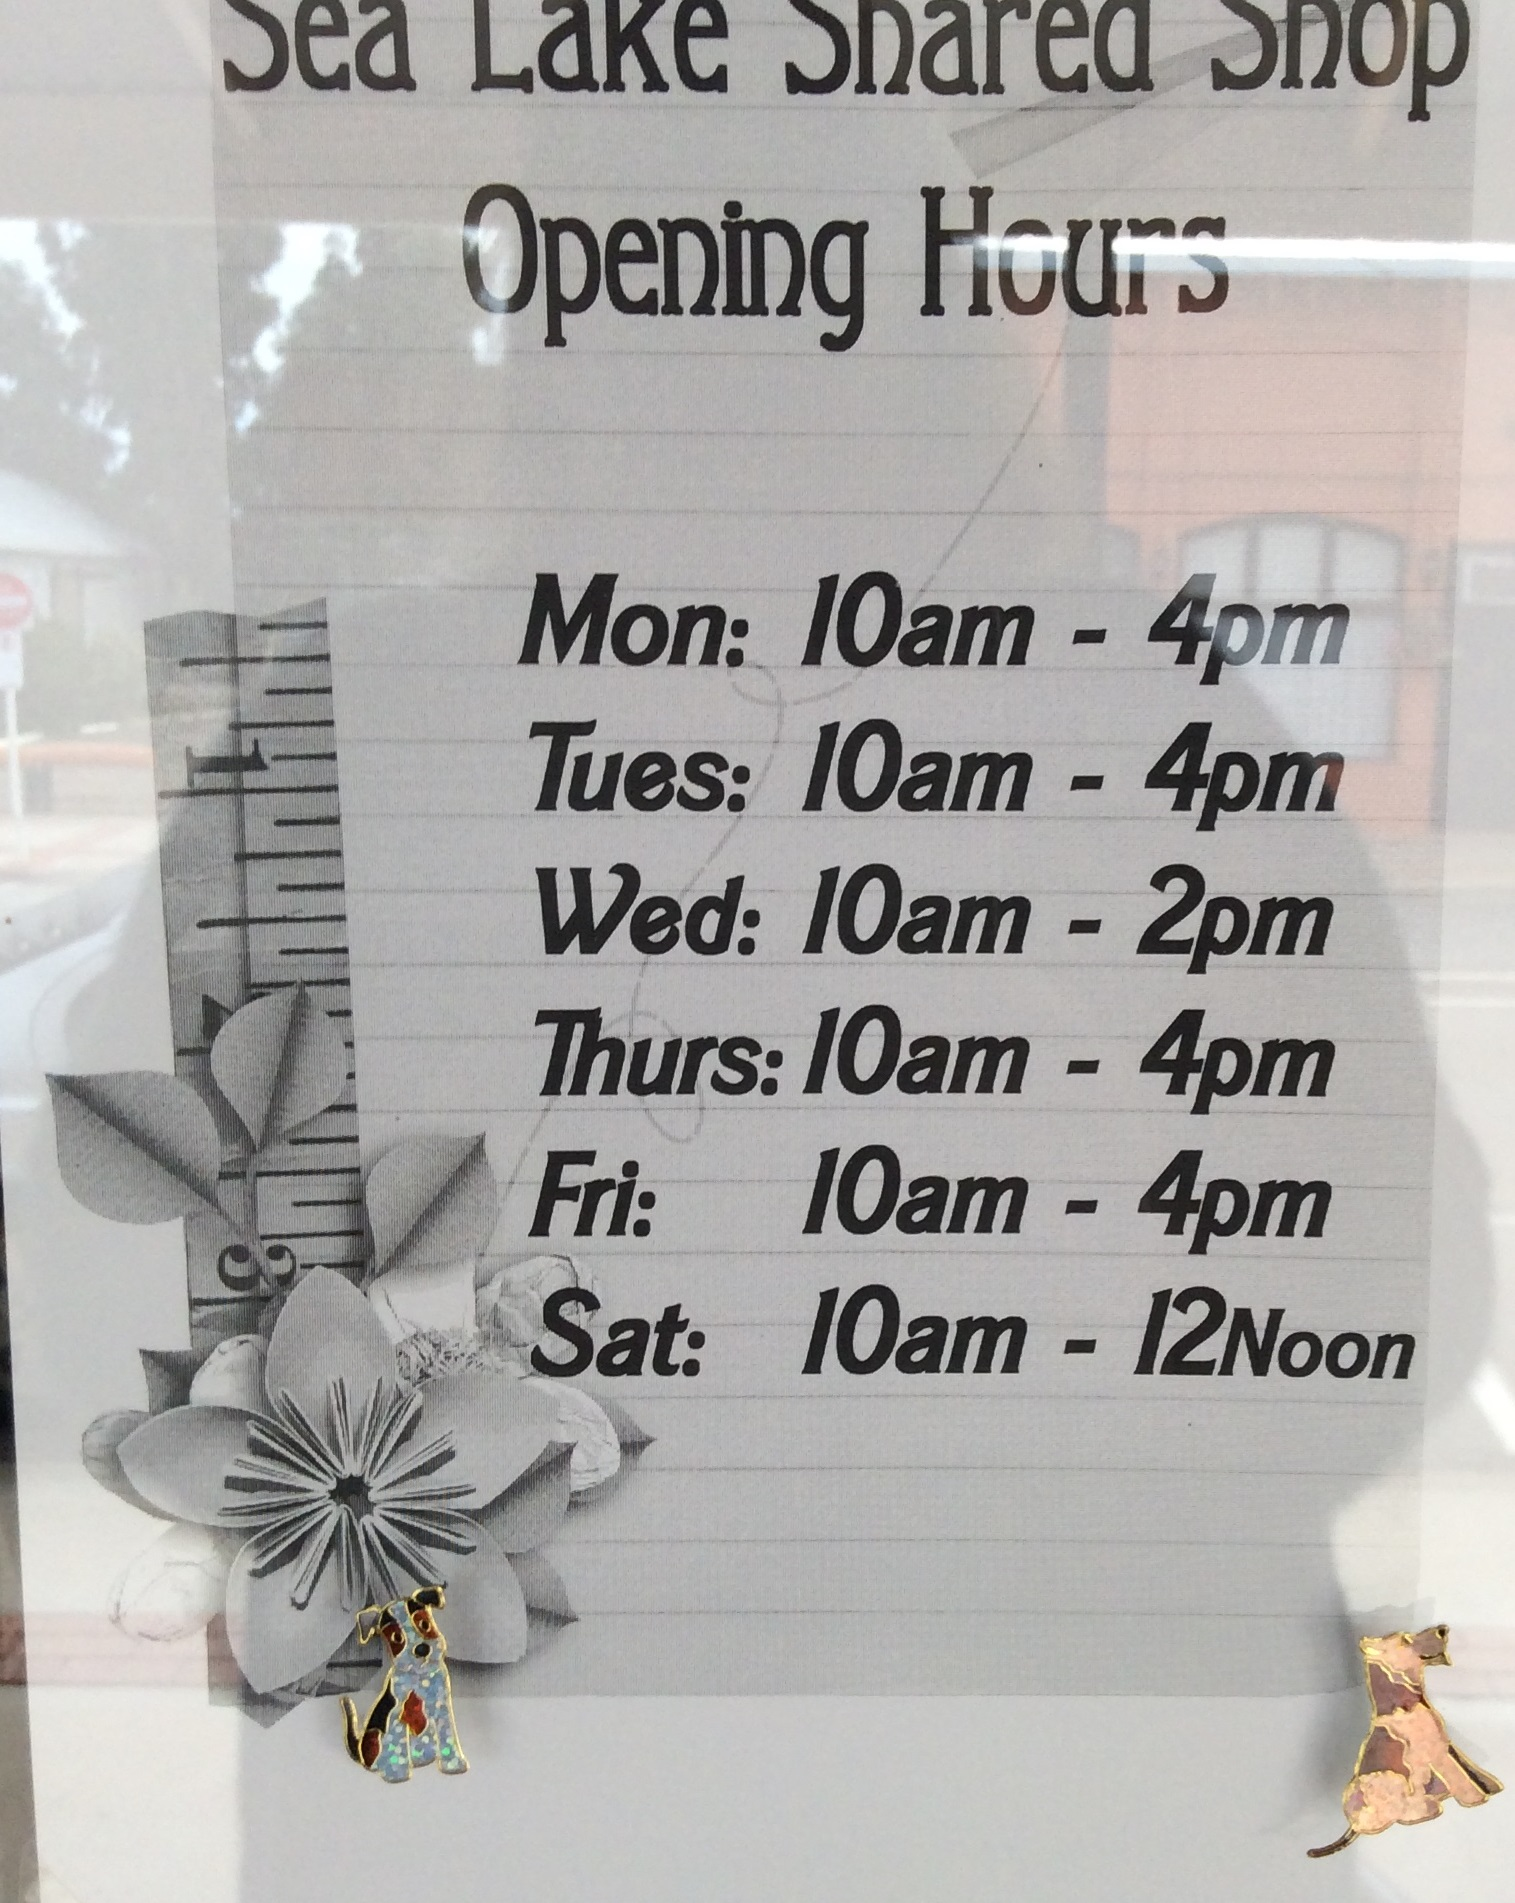 Shared Shop Opening Hours